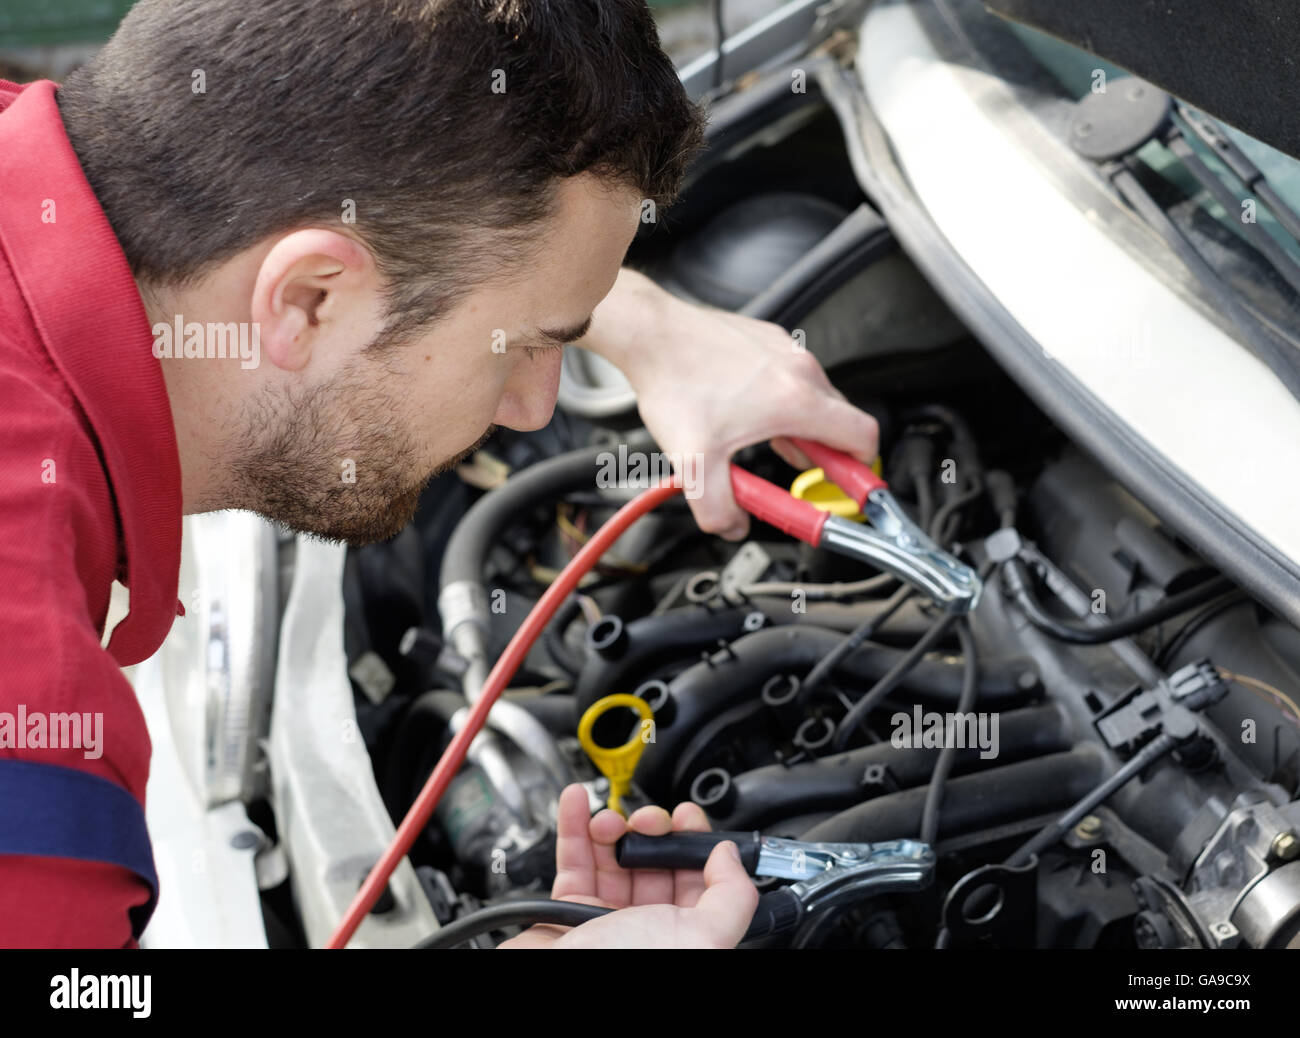 mechanic working on car engine with electricity cables - Stock Image